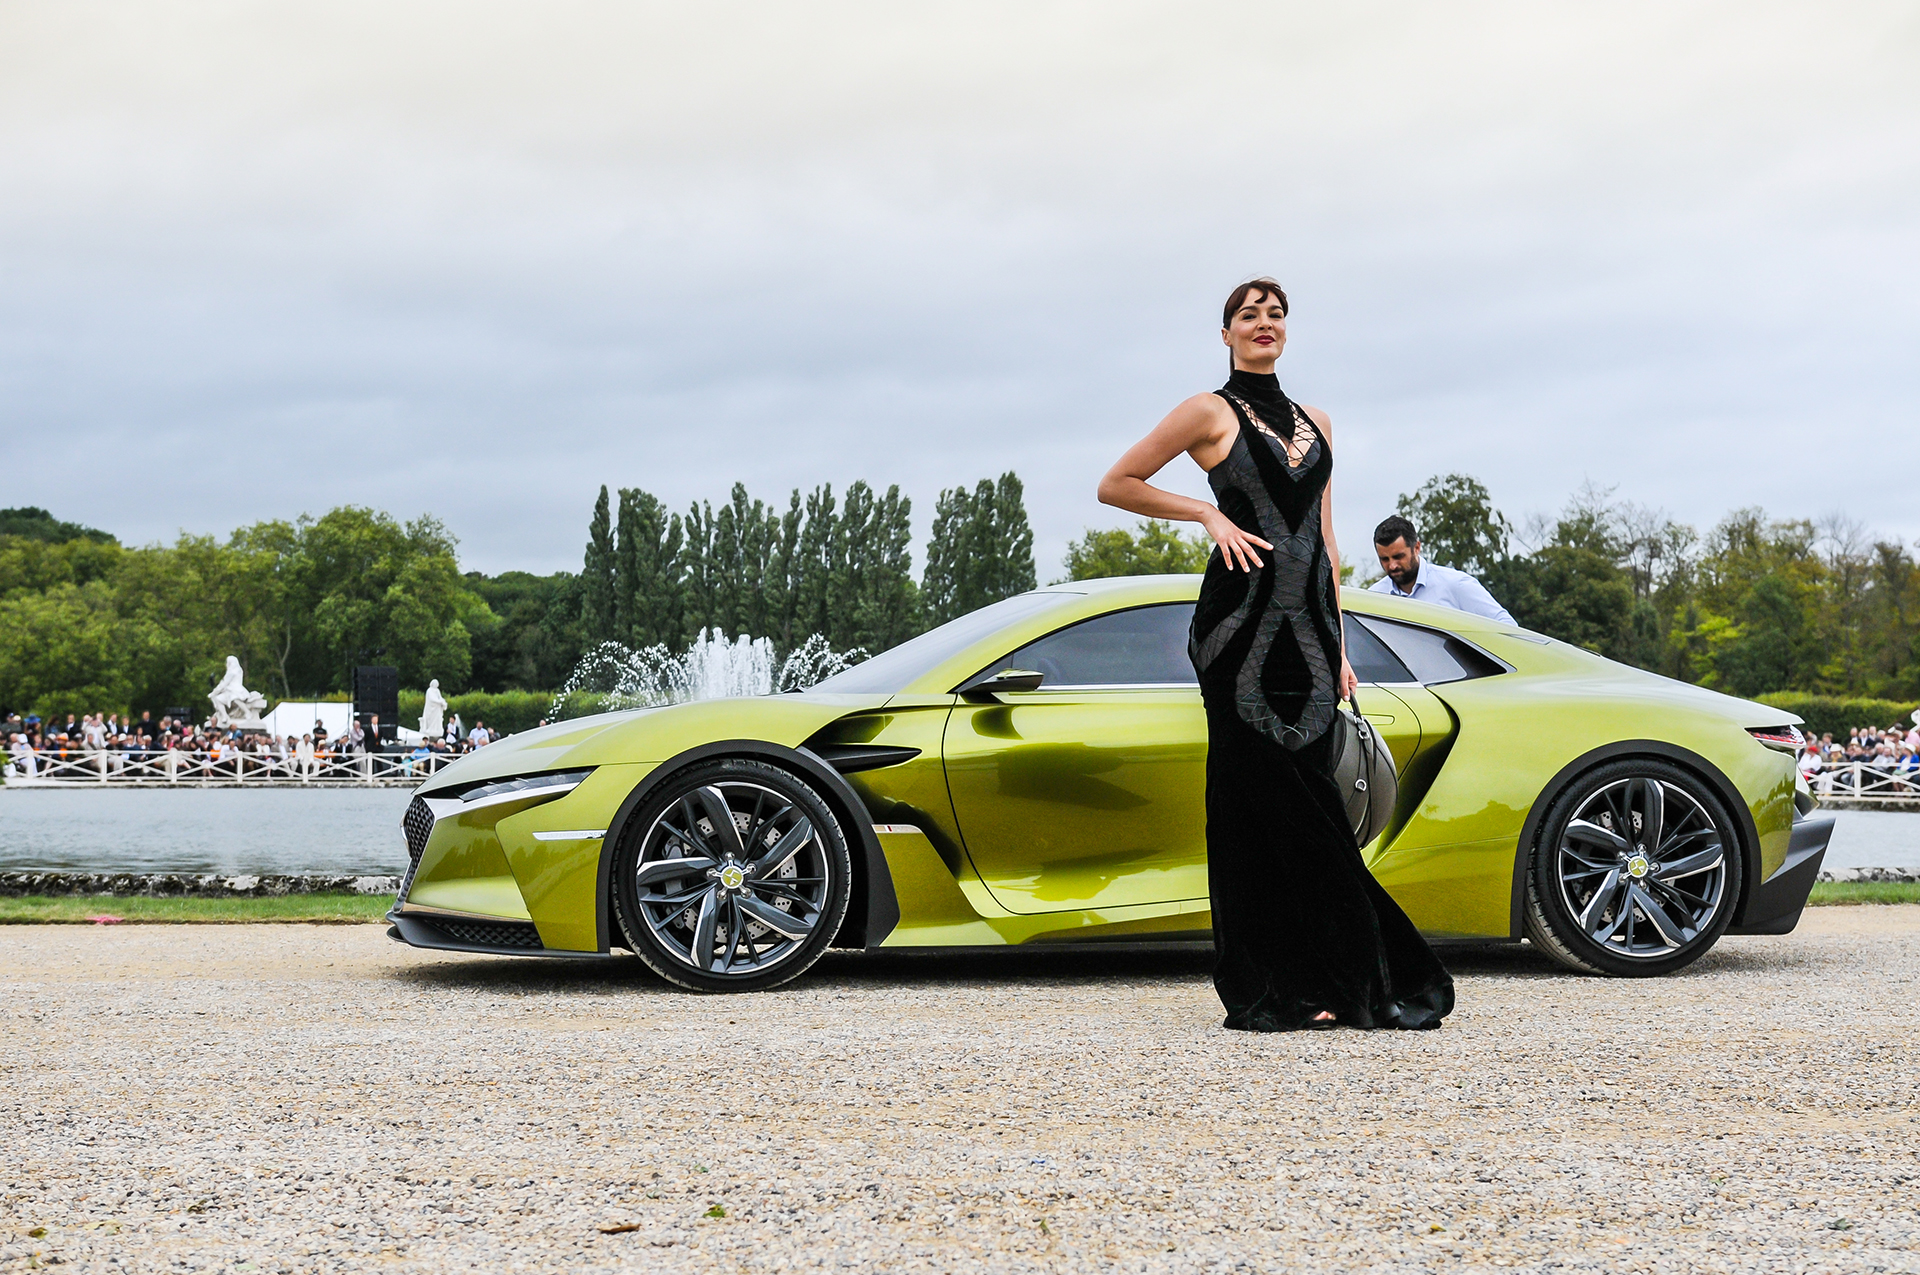 Chantilly 2016 - DS E-TENSE - fashion Eymeric François - photo by Pierre-Yves Riom